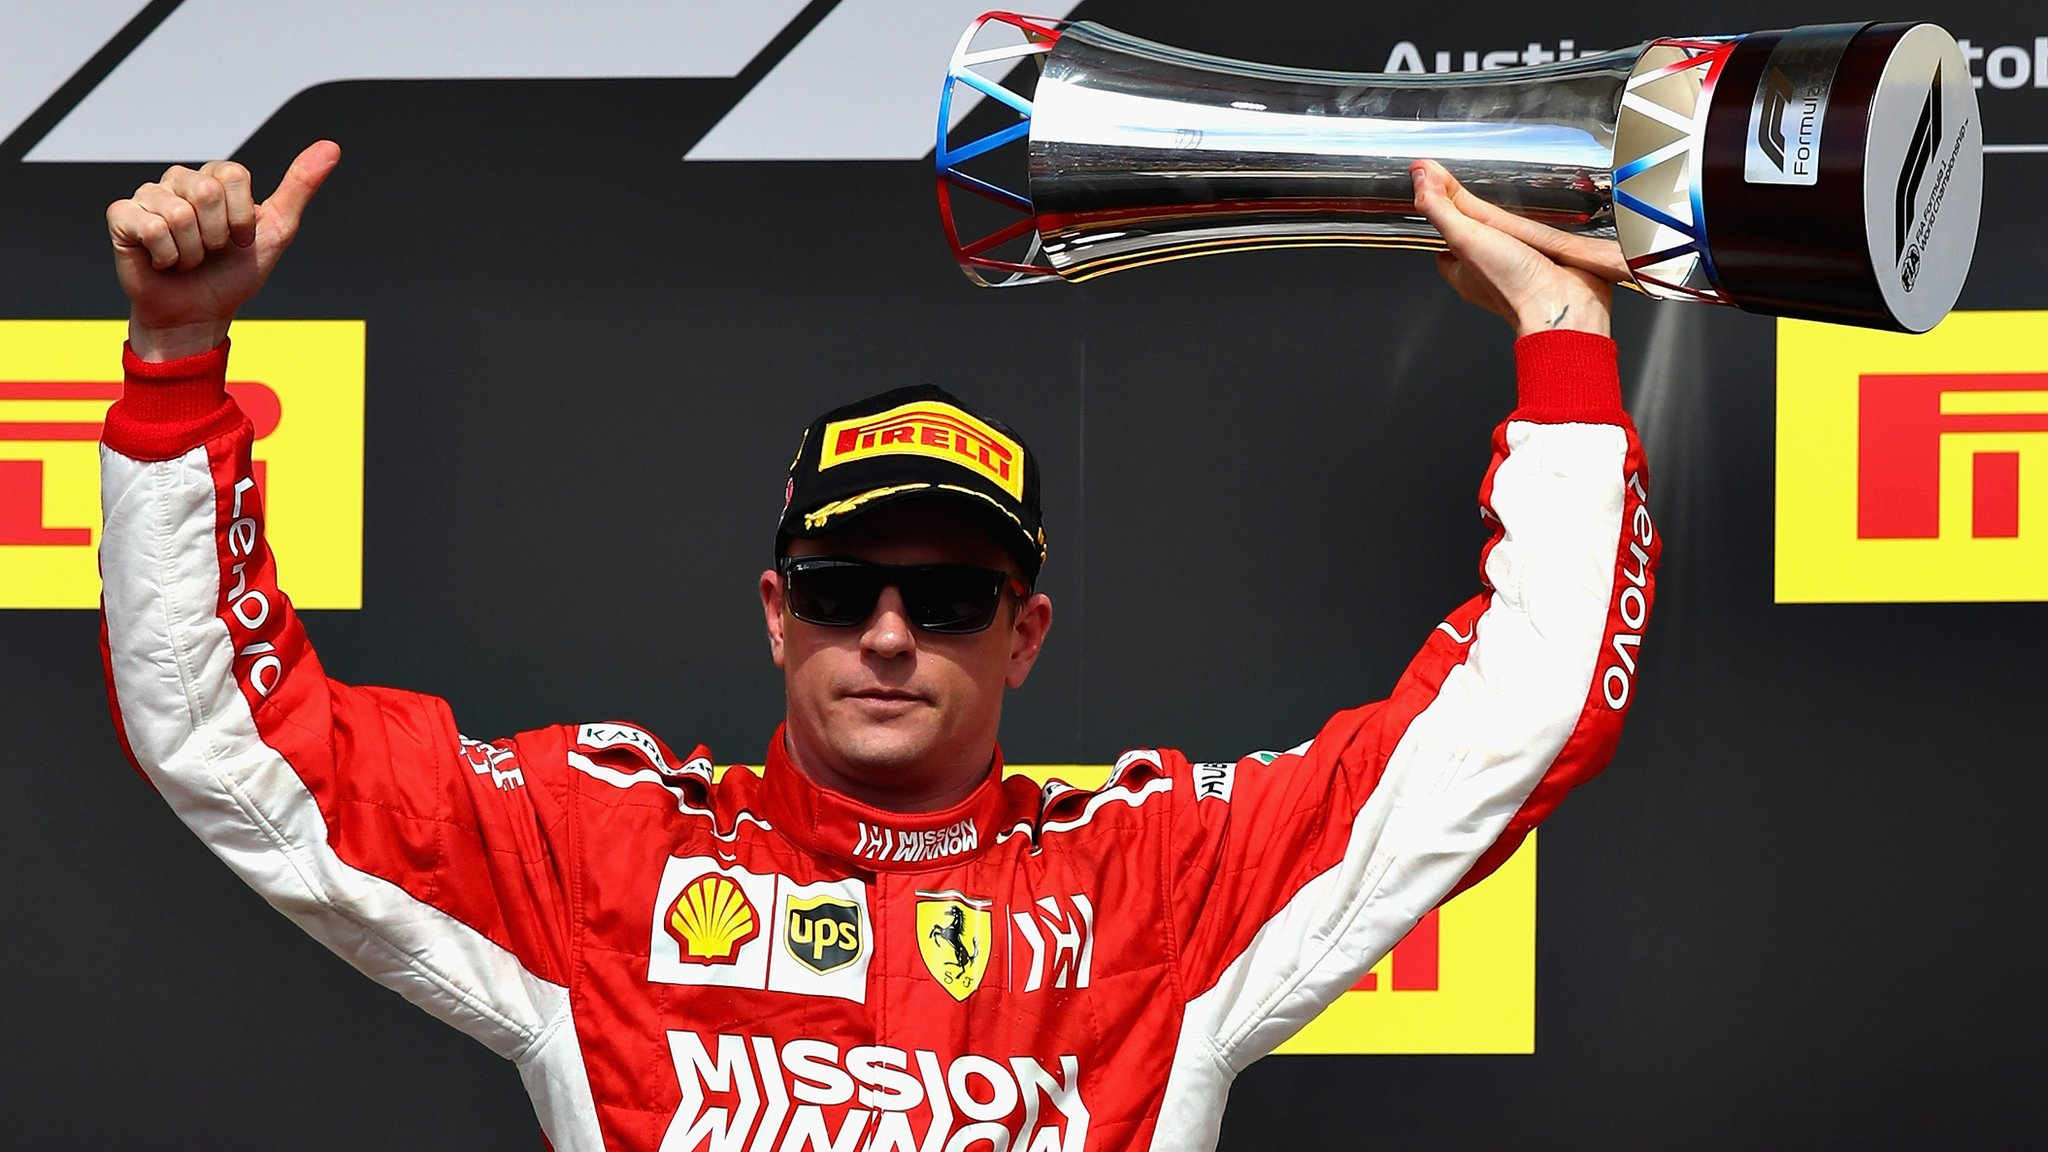 Hamilton title wait goes on as Raikkonen wins thriller in Austin